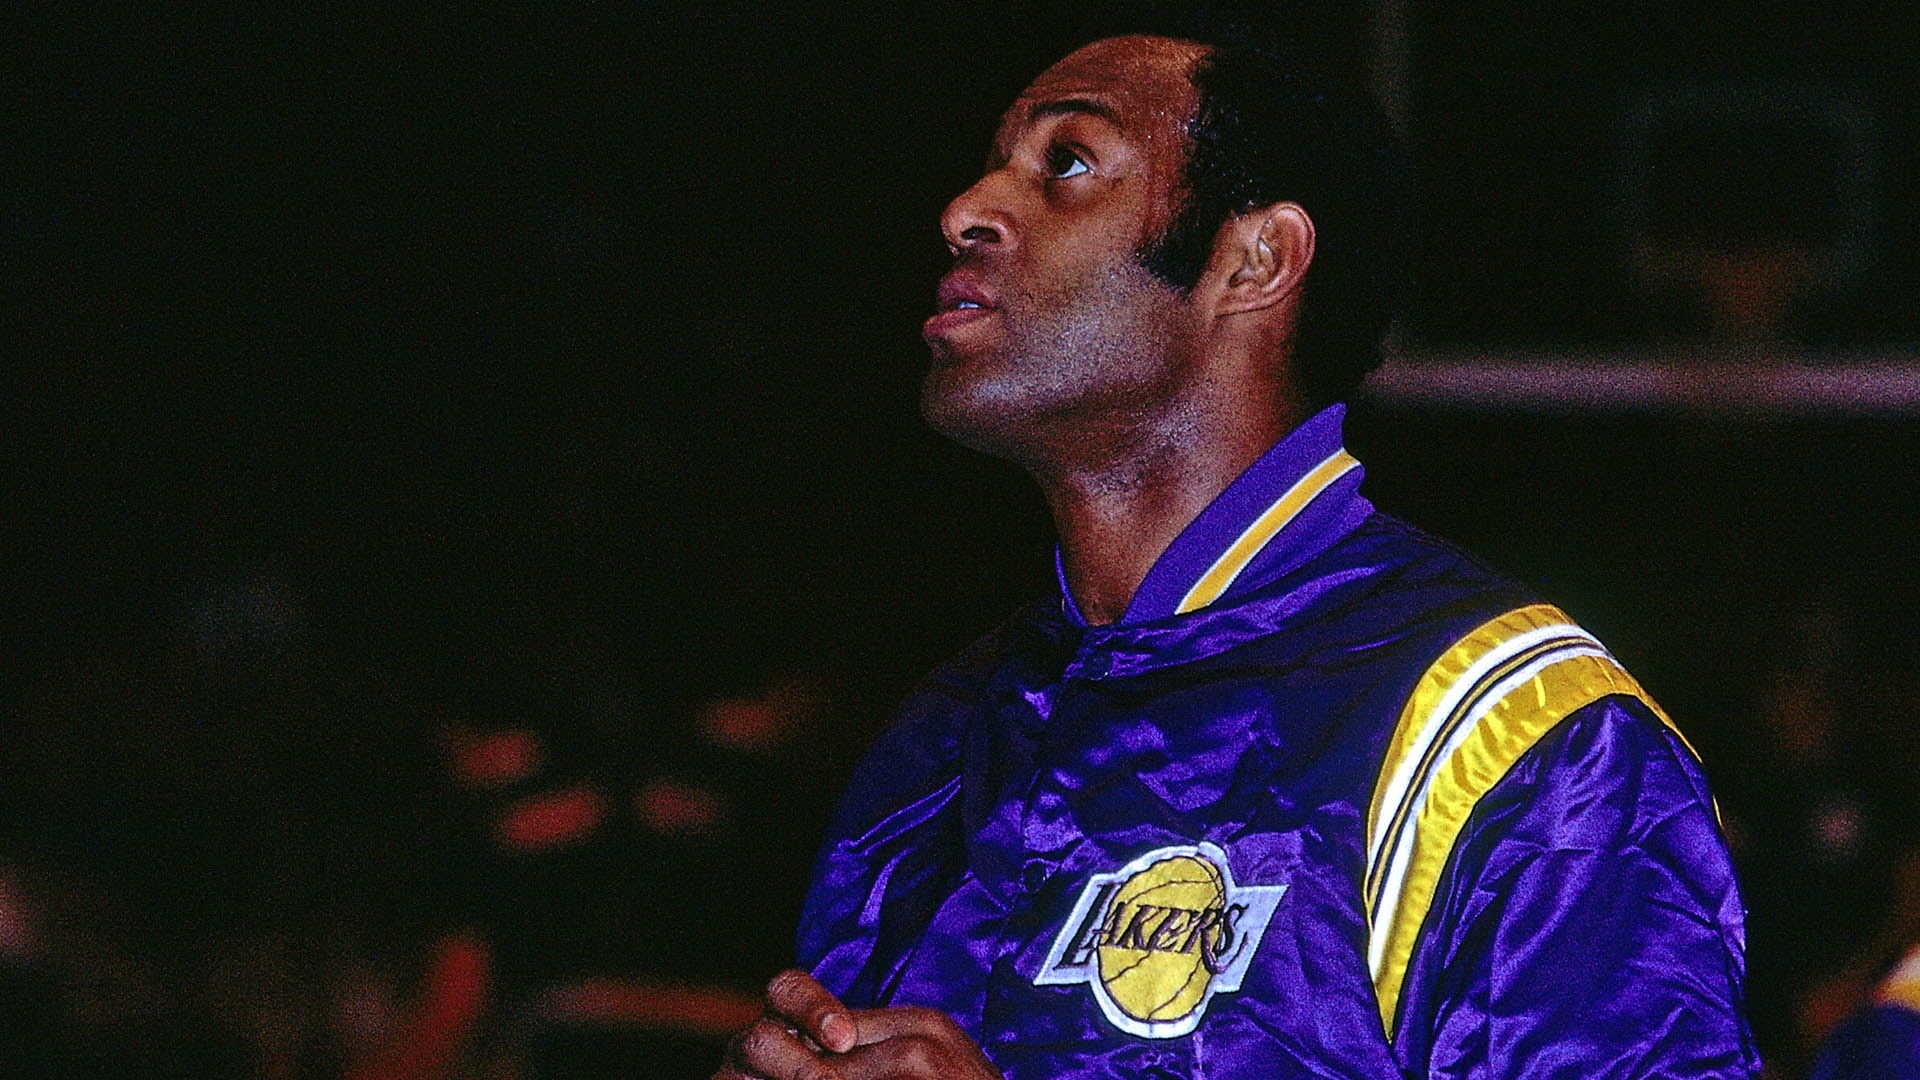 Lakers legend and Hall of Famer Elgin Baylor dead at 86